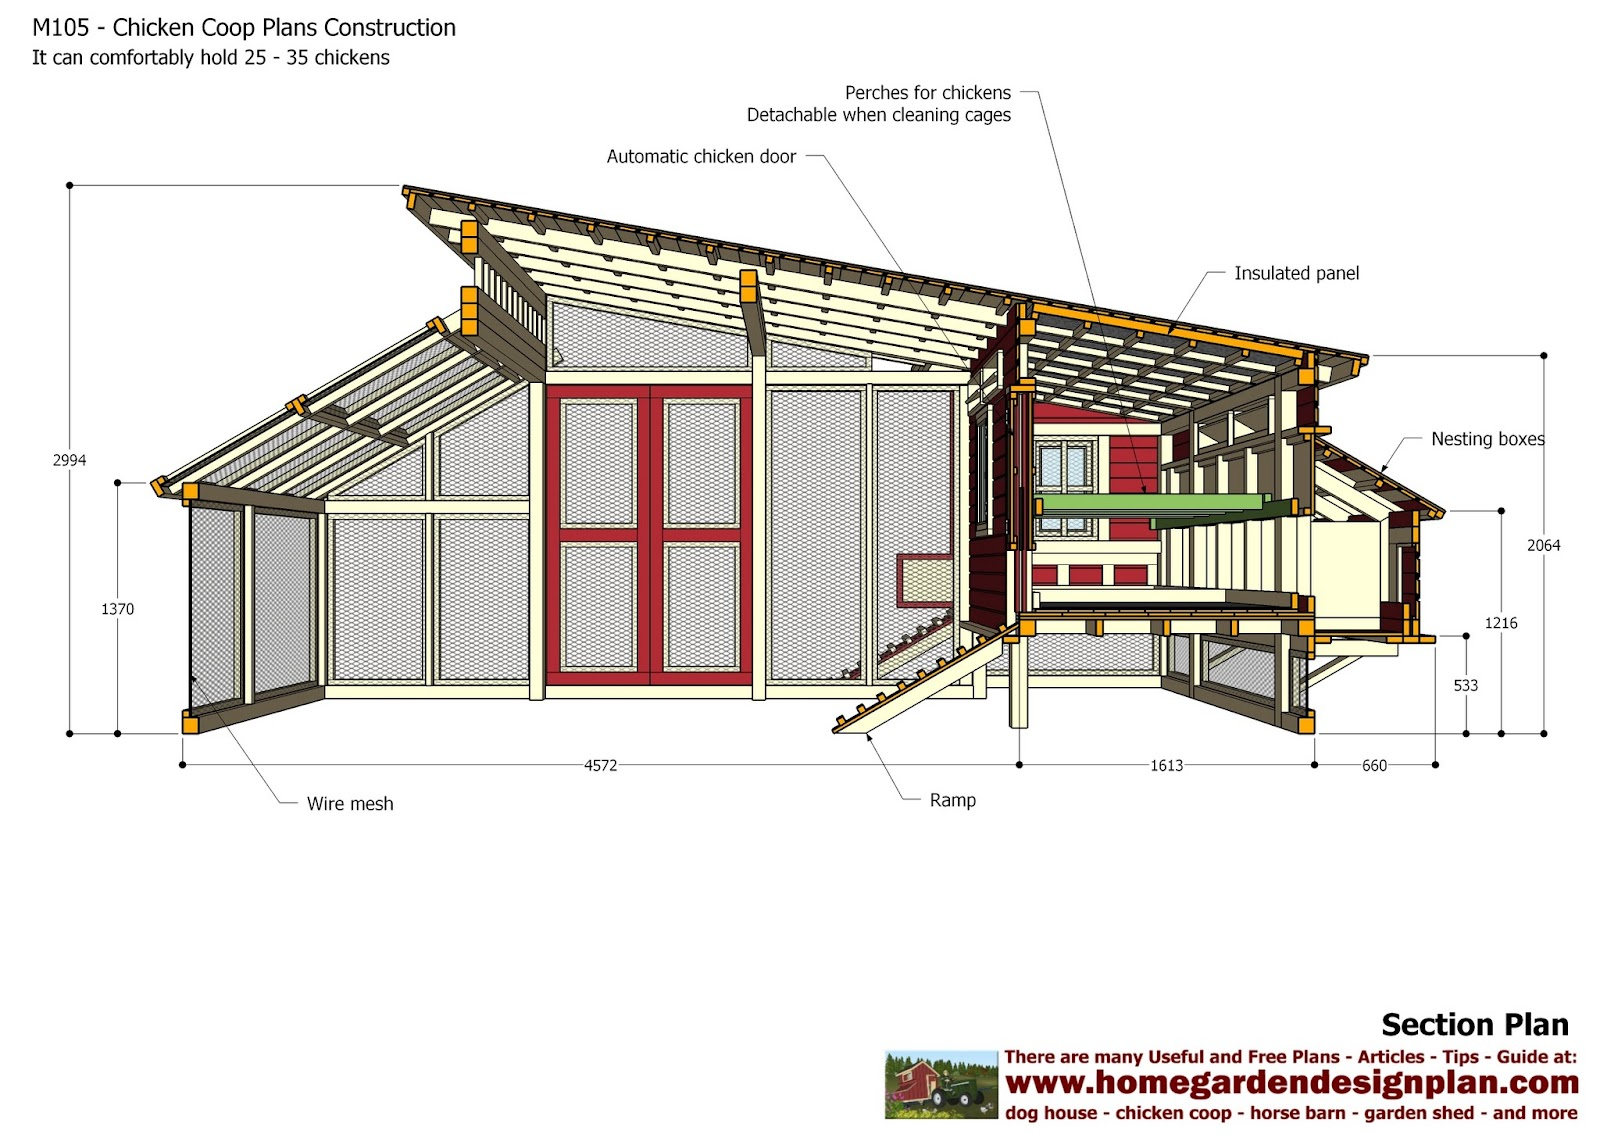 Chicken coop construction videos learn how coop channel for Chicken coop building plans free